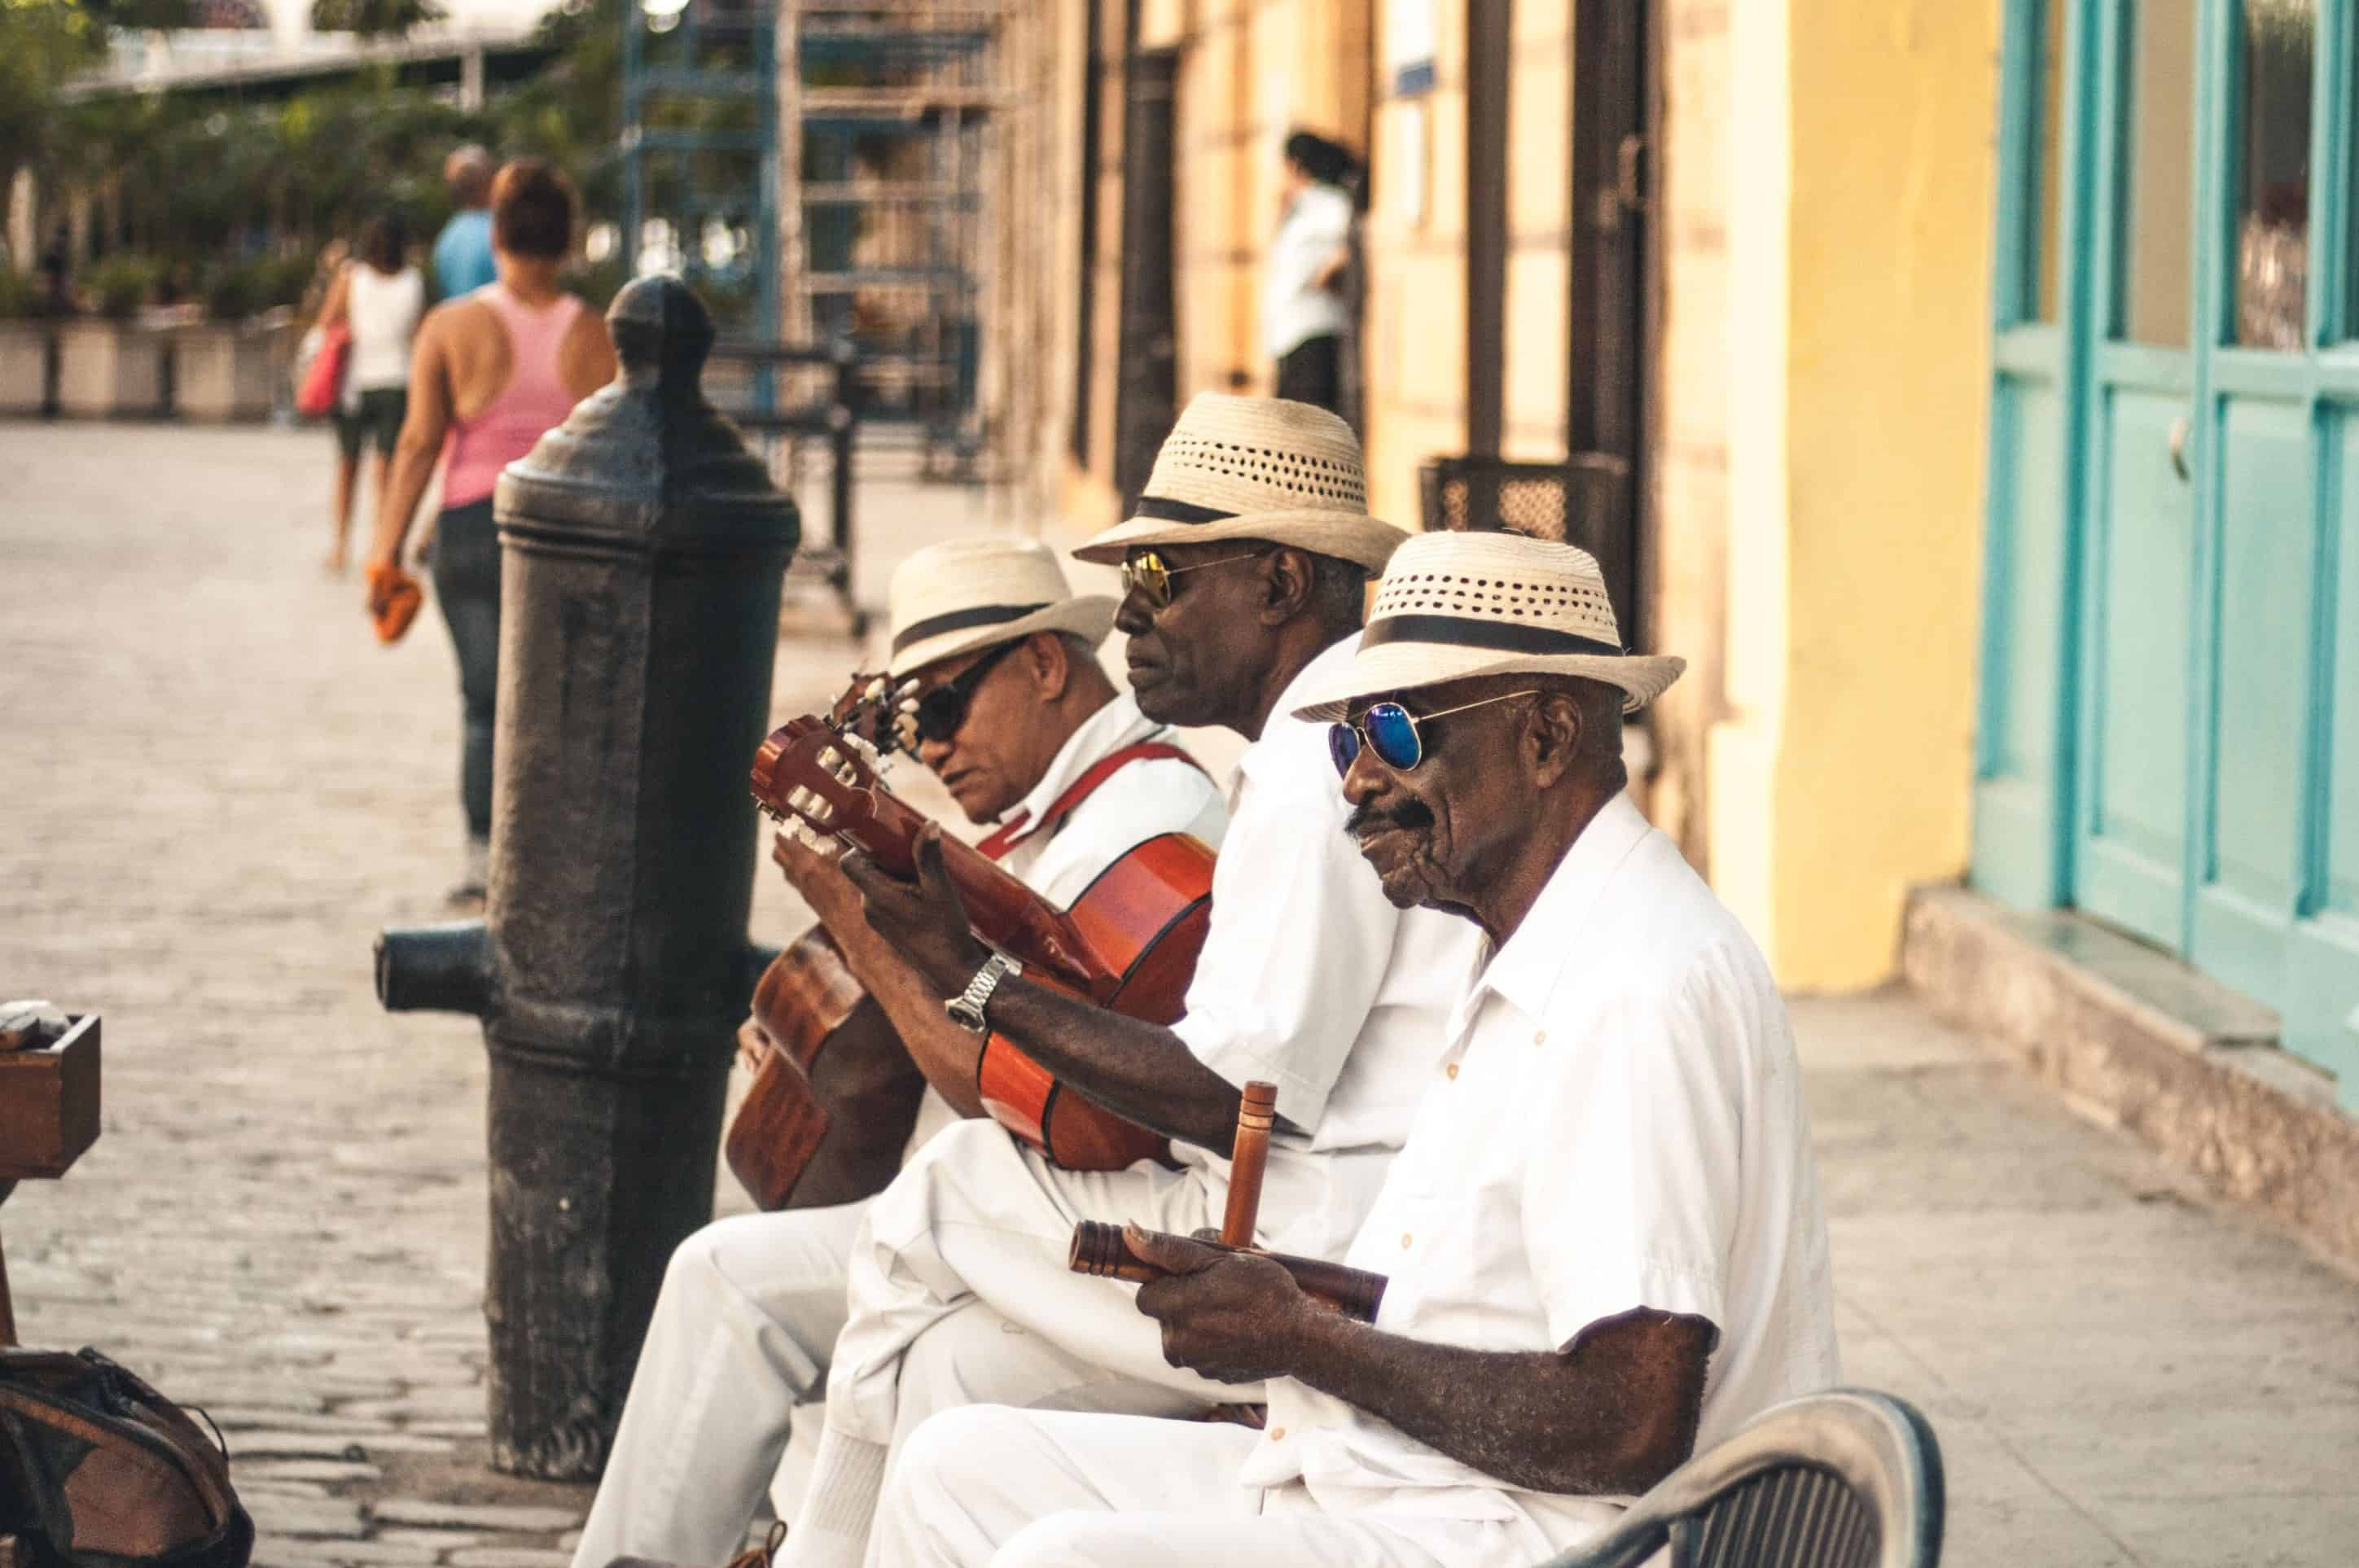 How to Travel to Cuba | Interesting Facts about Cuba